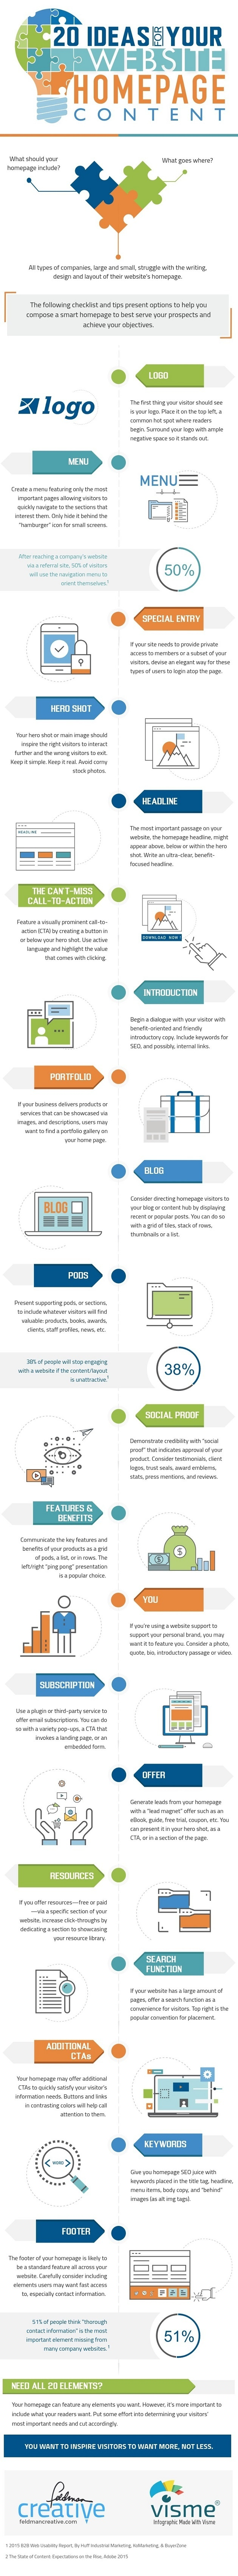 bring-them-home-with-local-seo-infographic